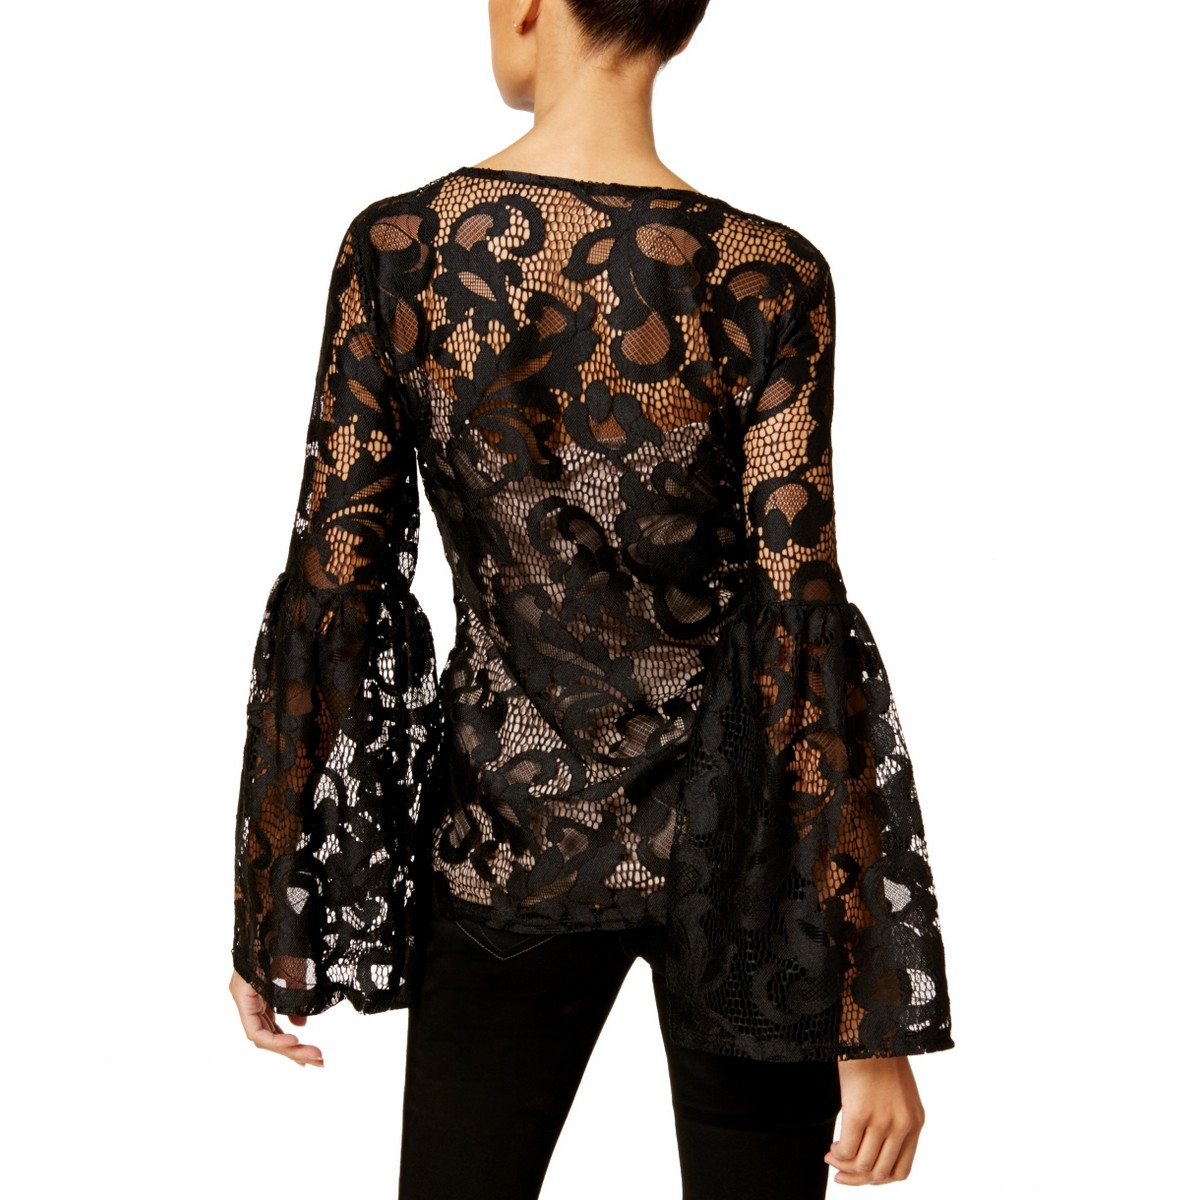 INC-NEW-Women-039-s-Lace-Bell-Sleeve-Scoop-Neck-Blouse-Shirt-Top-TEDO thumbnail 3